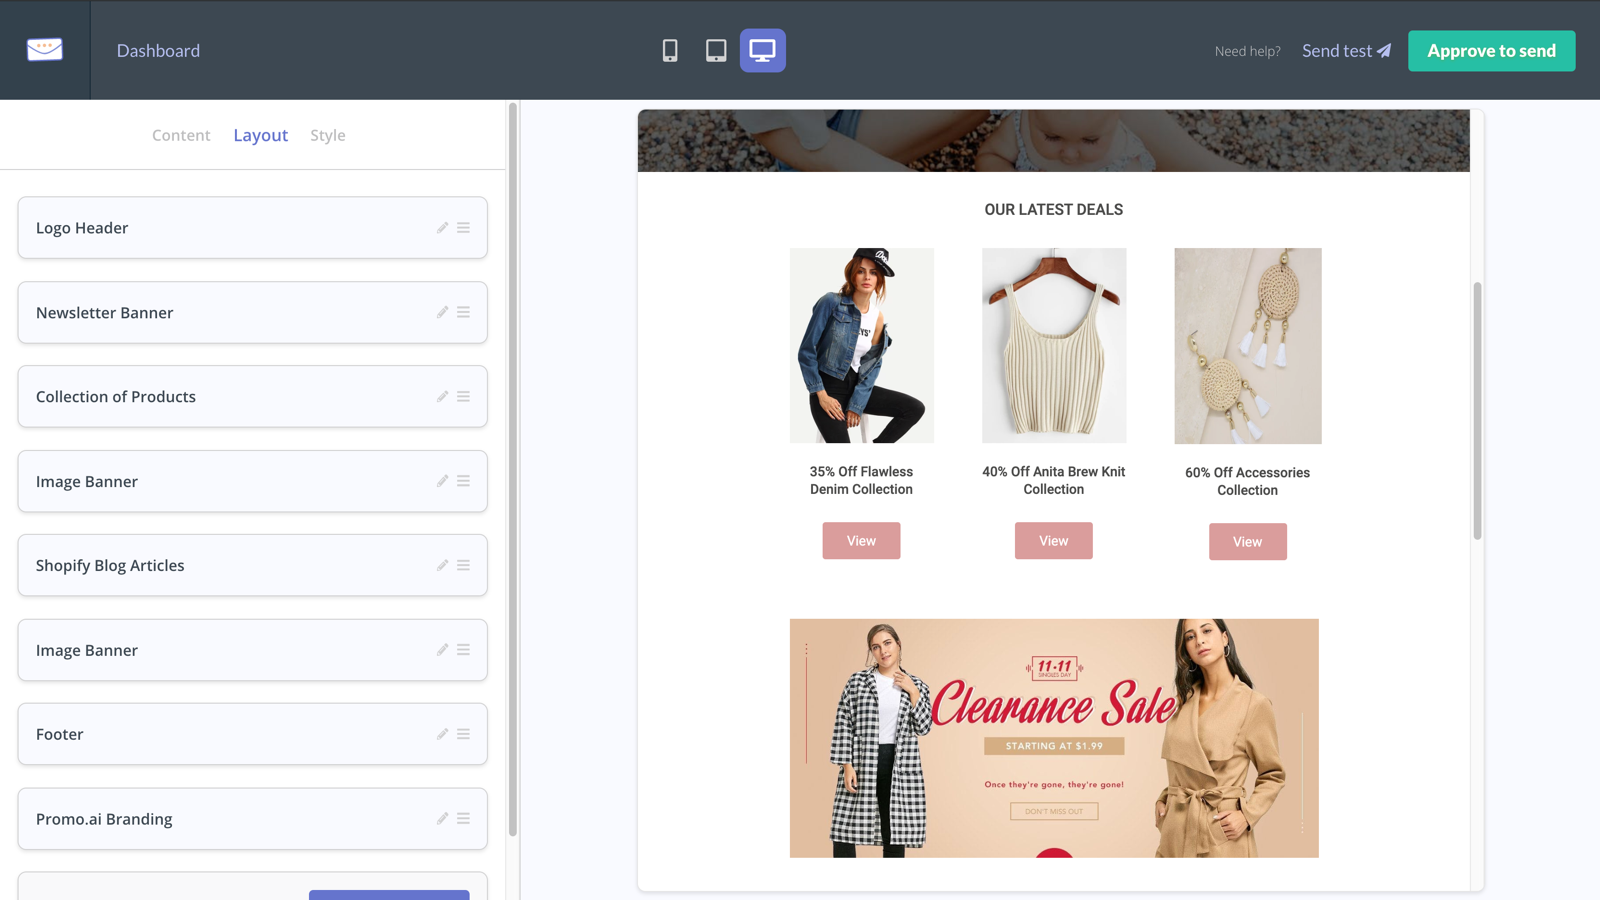 Customize the layout, content, and style